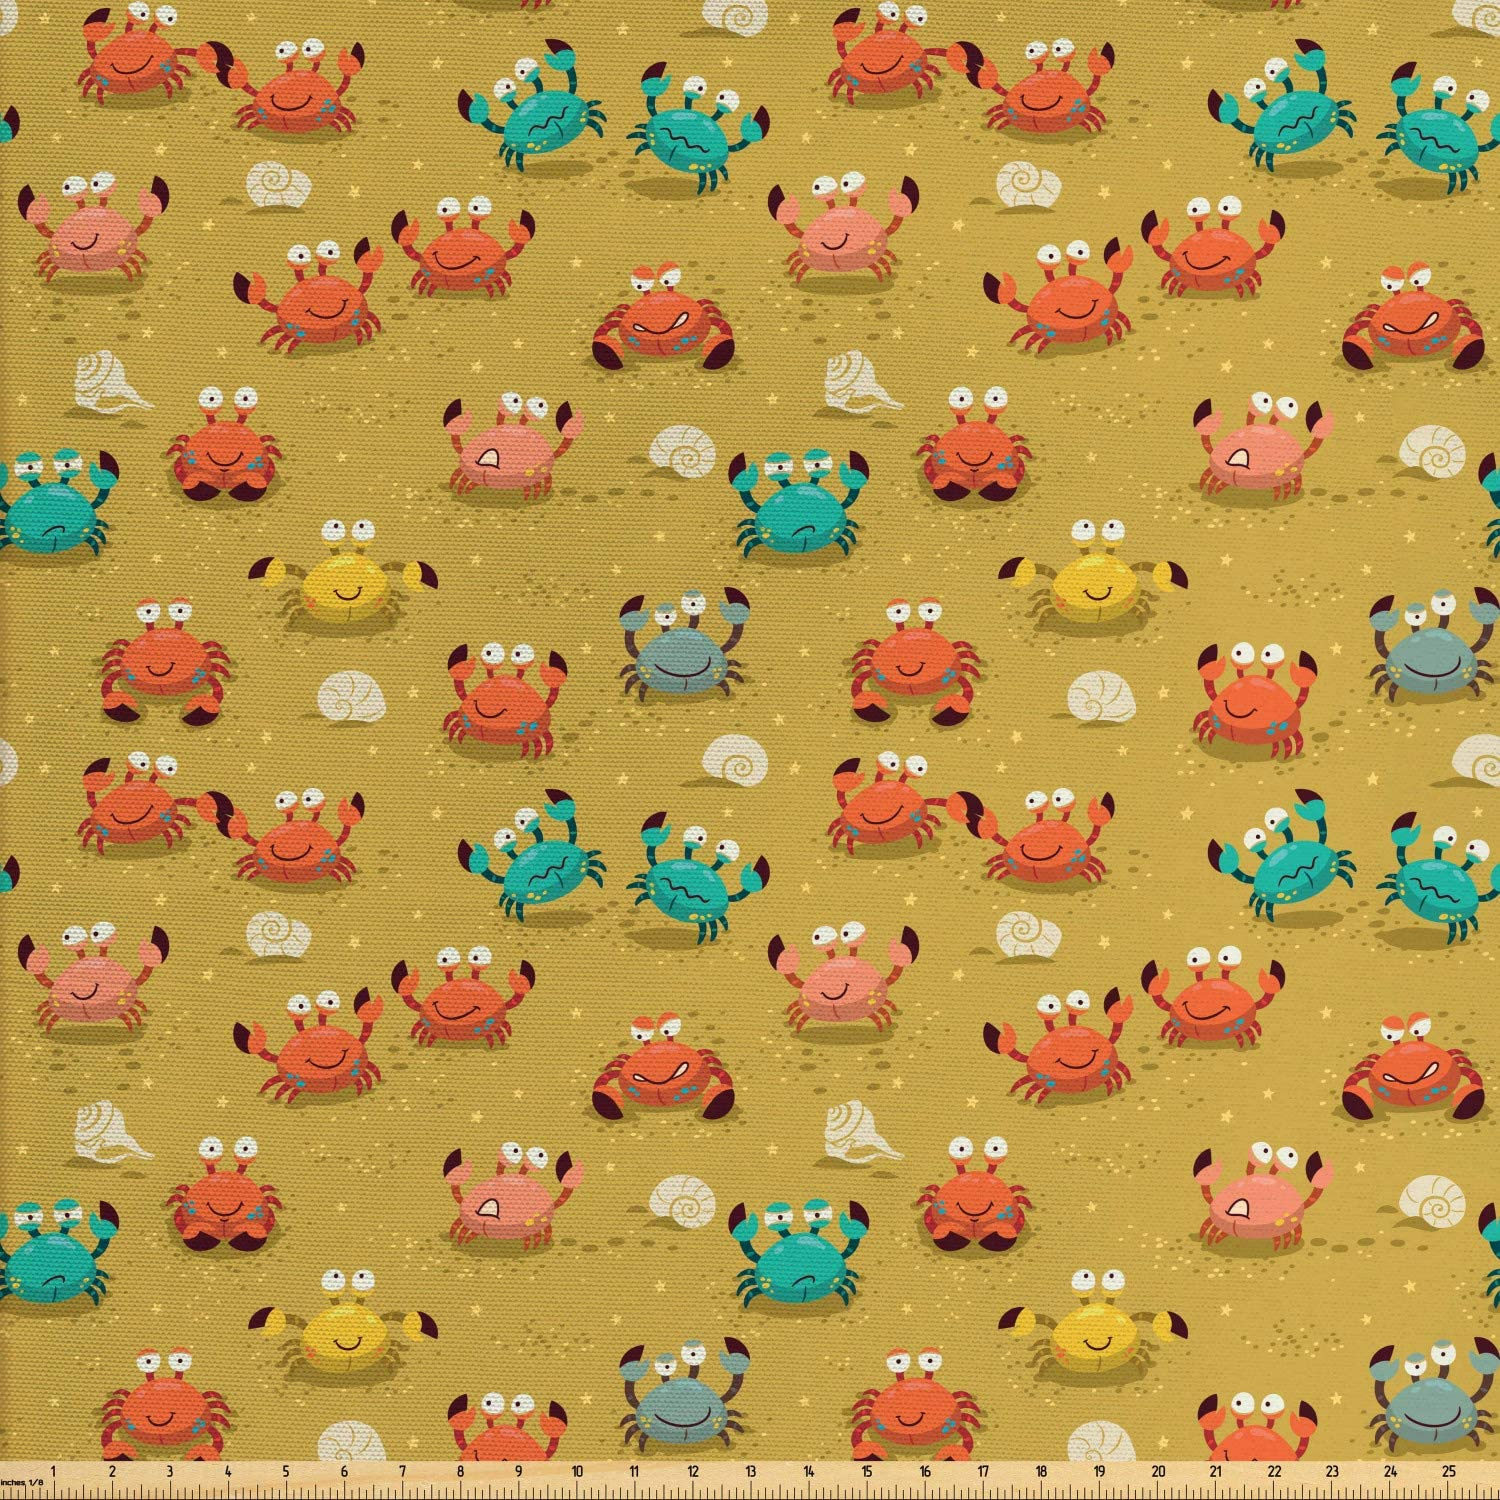 Ambesonne Crabs Fabric by The Yard, Sea Themed Cartoon Style Illustration of Crabs Stars and Shells Pattern Art, Decorative Fabric for Upholstery and Home Accents, 1 Yard, Pale Coffee